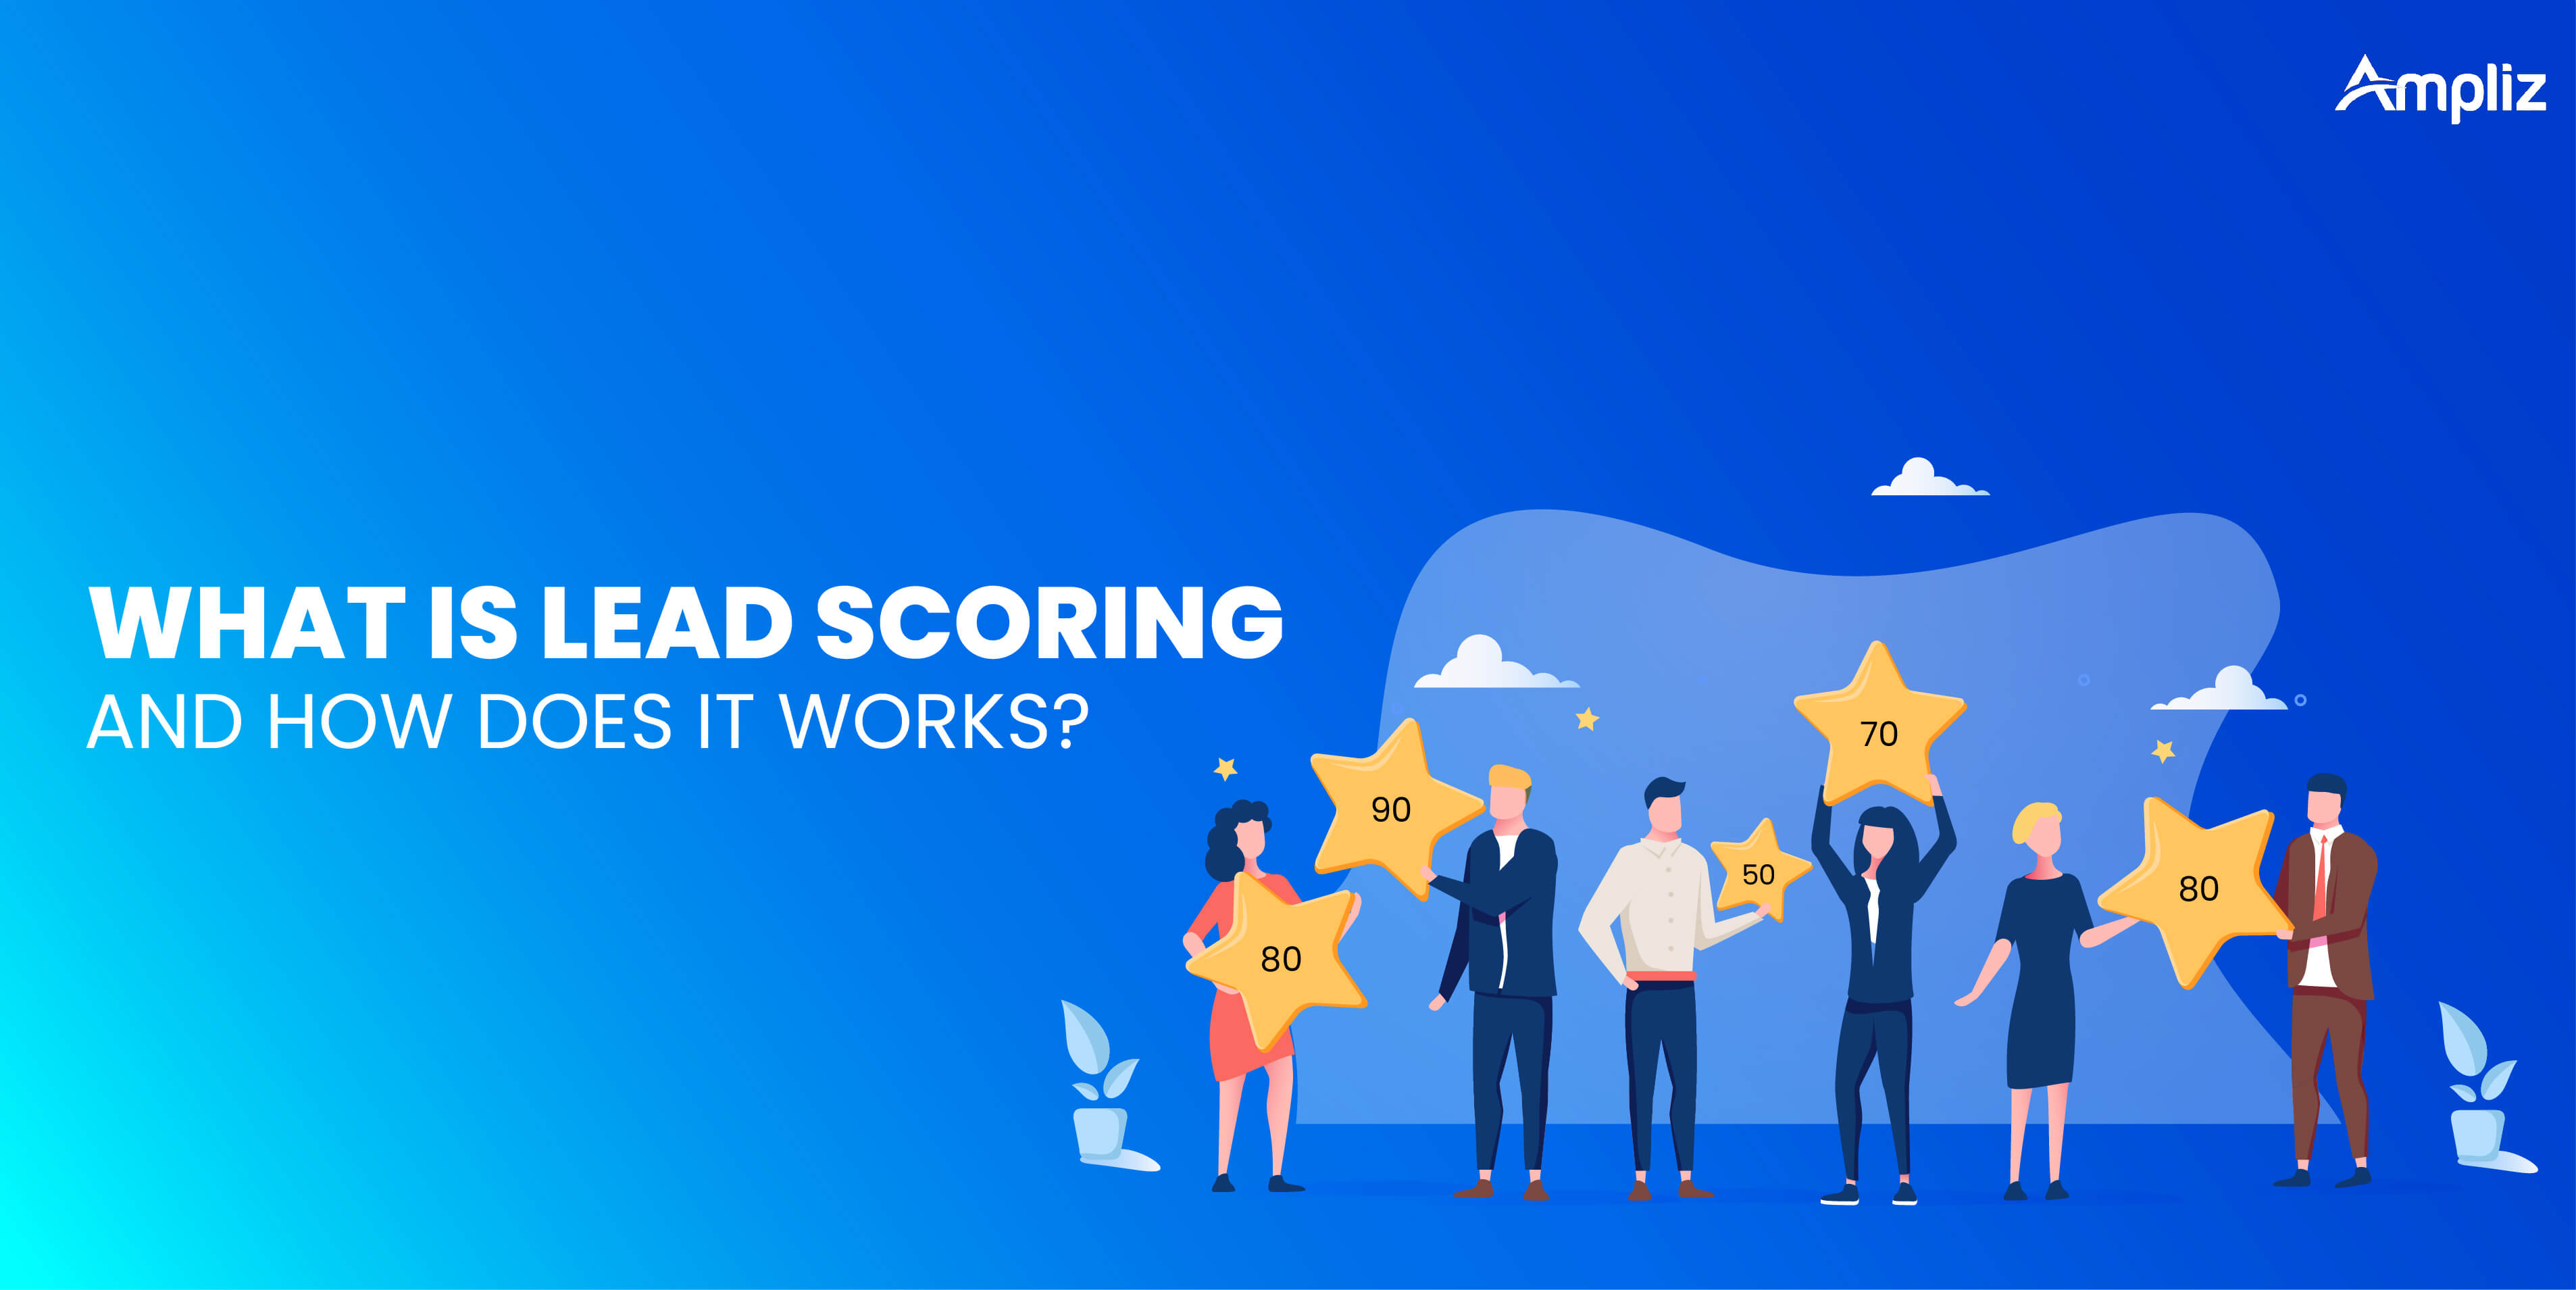 what is lead scoring?